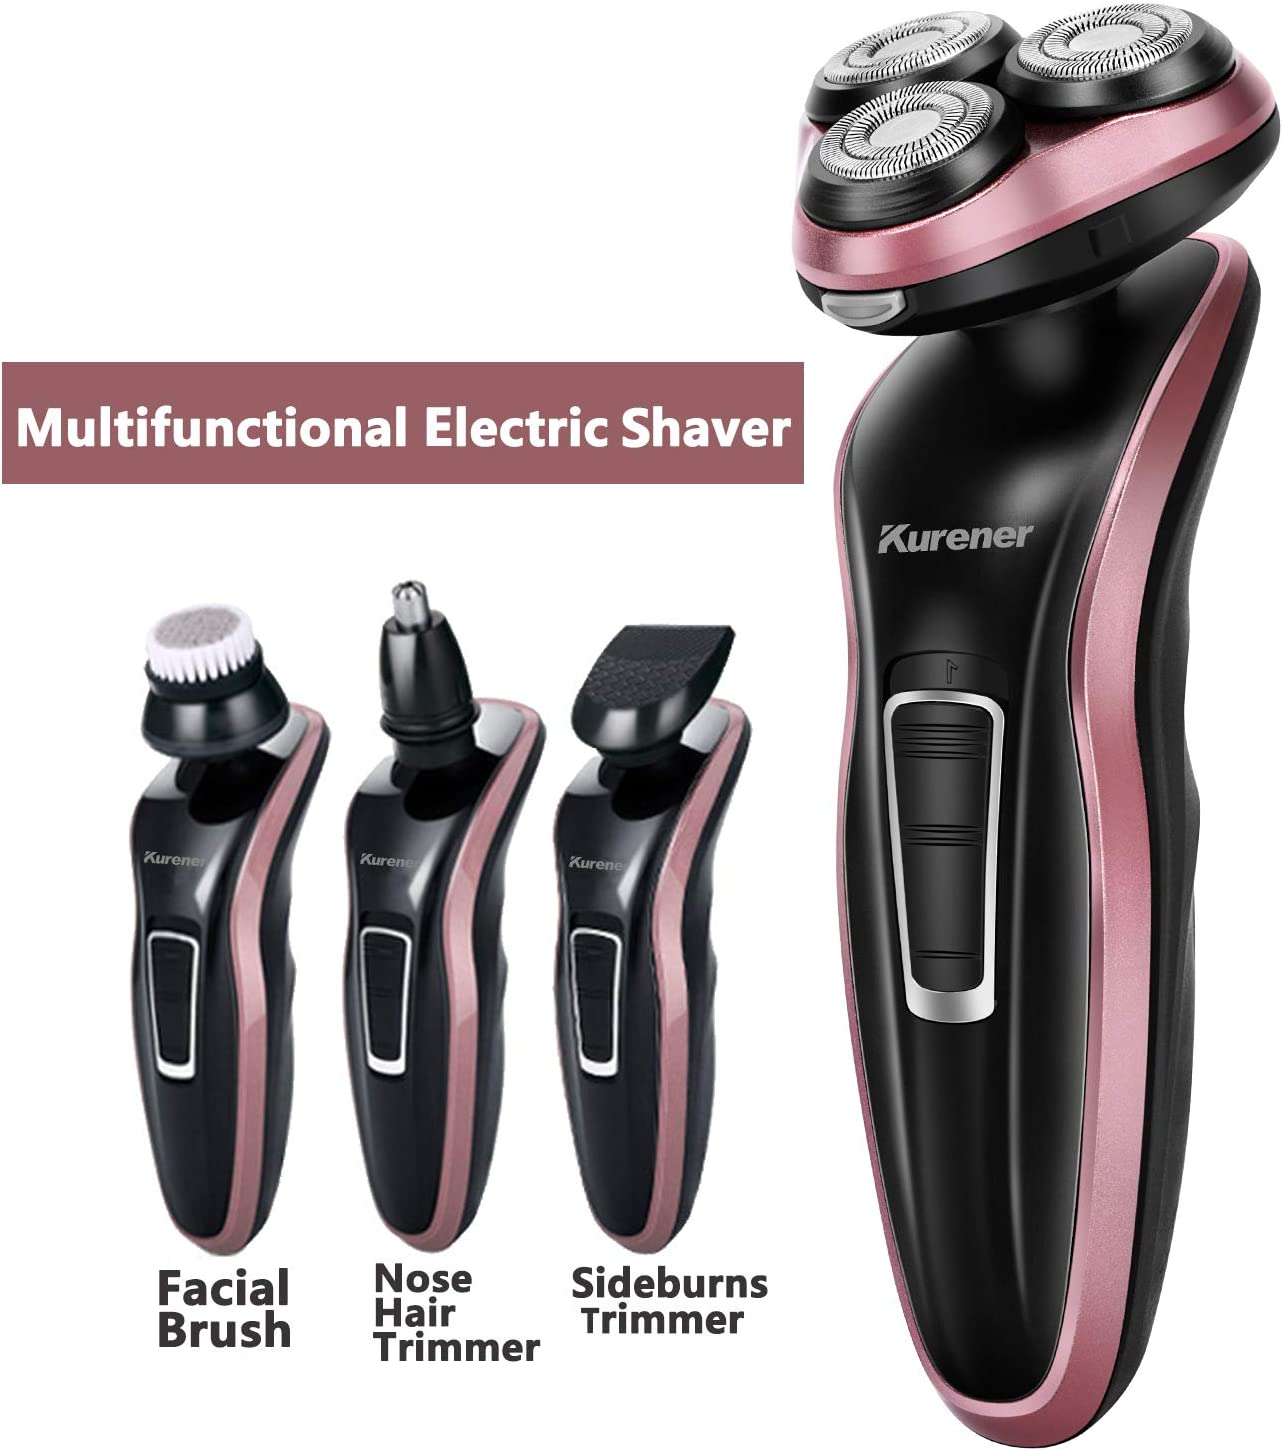 4 in 1 Mens Electric Razor with Sideburns Trimmer, Facial Cleaning Brush & Nose Trimmer